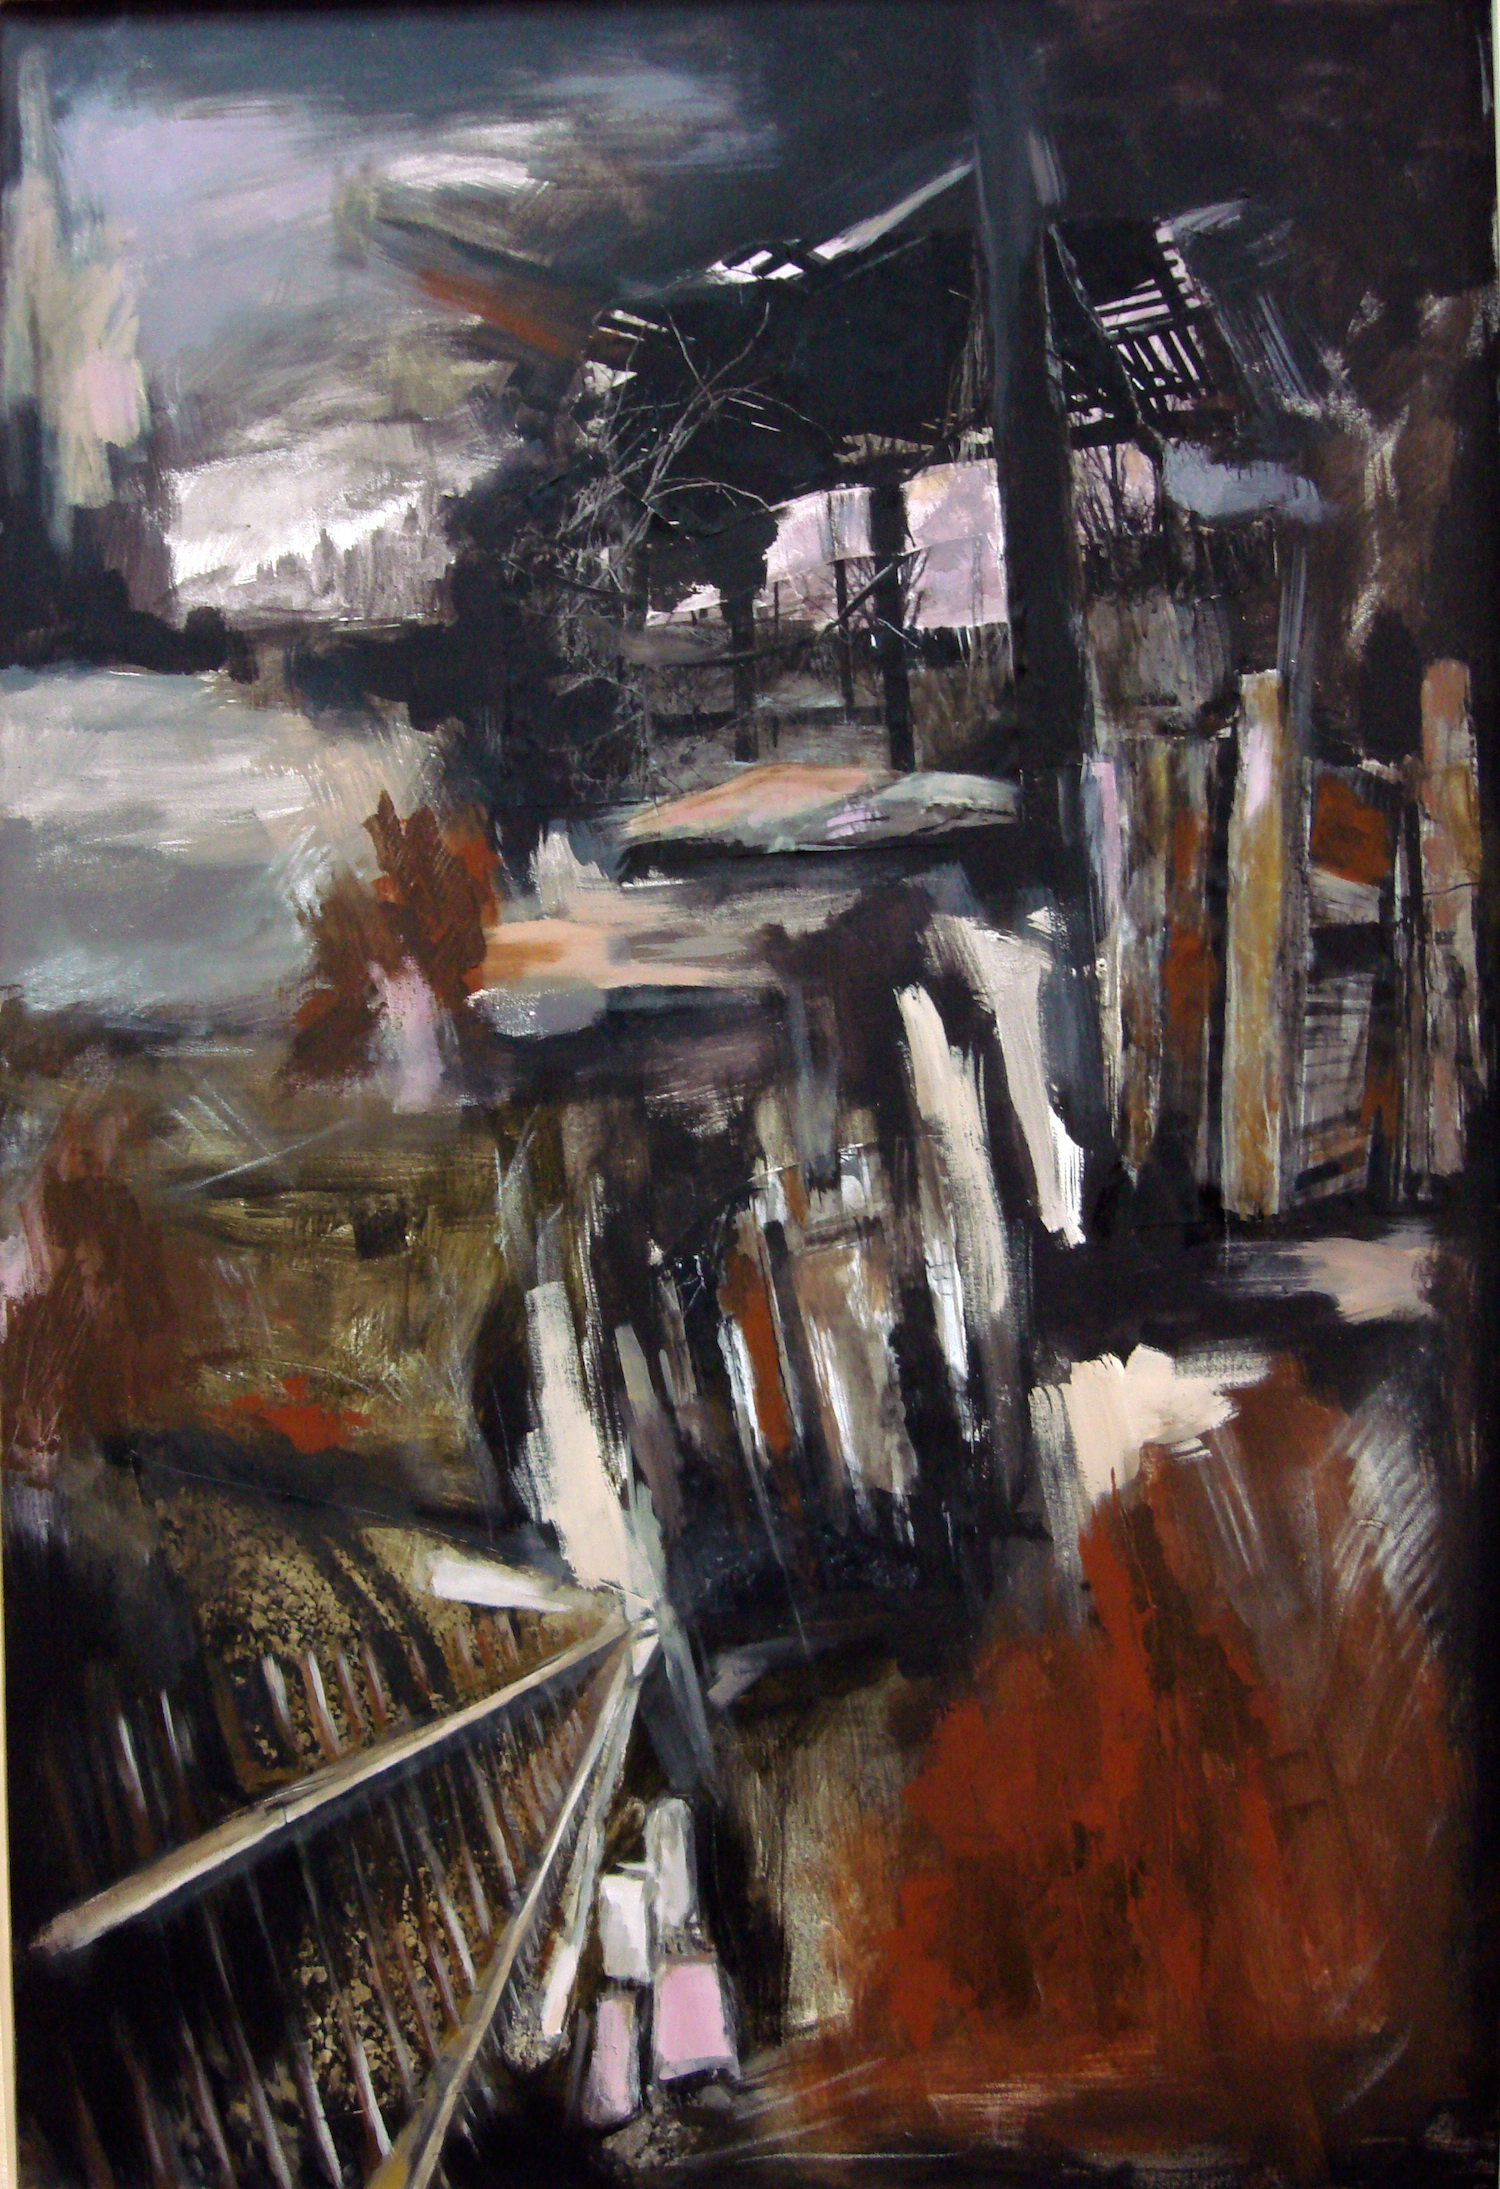 Untitled #76, mixed media on canvas, 47x31 inches, 2008